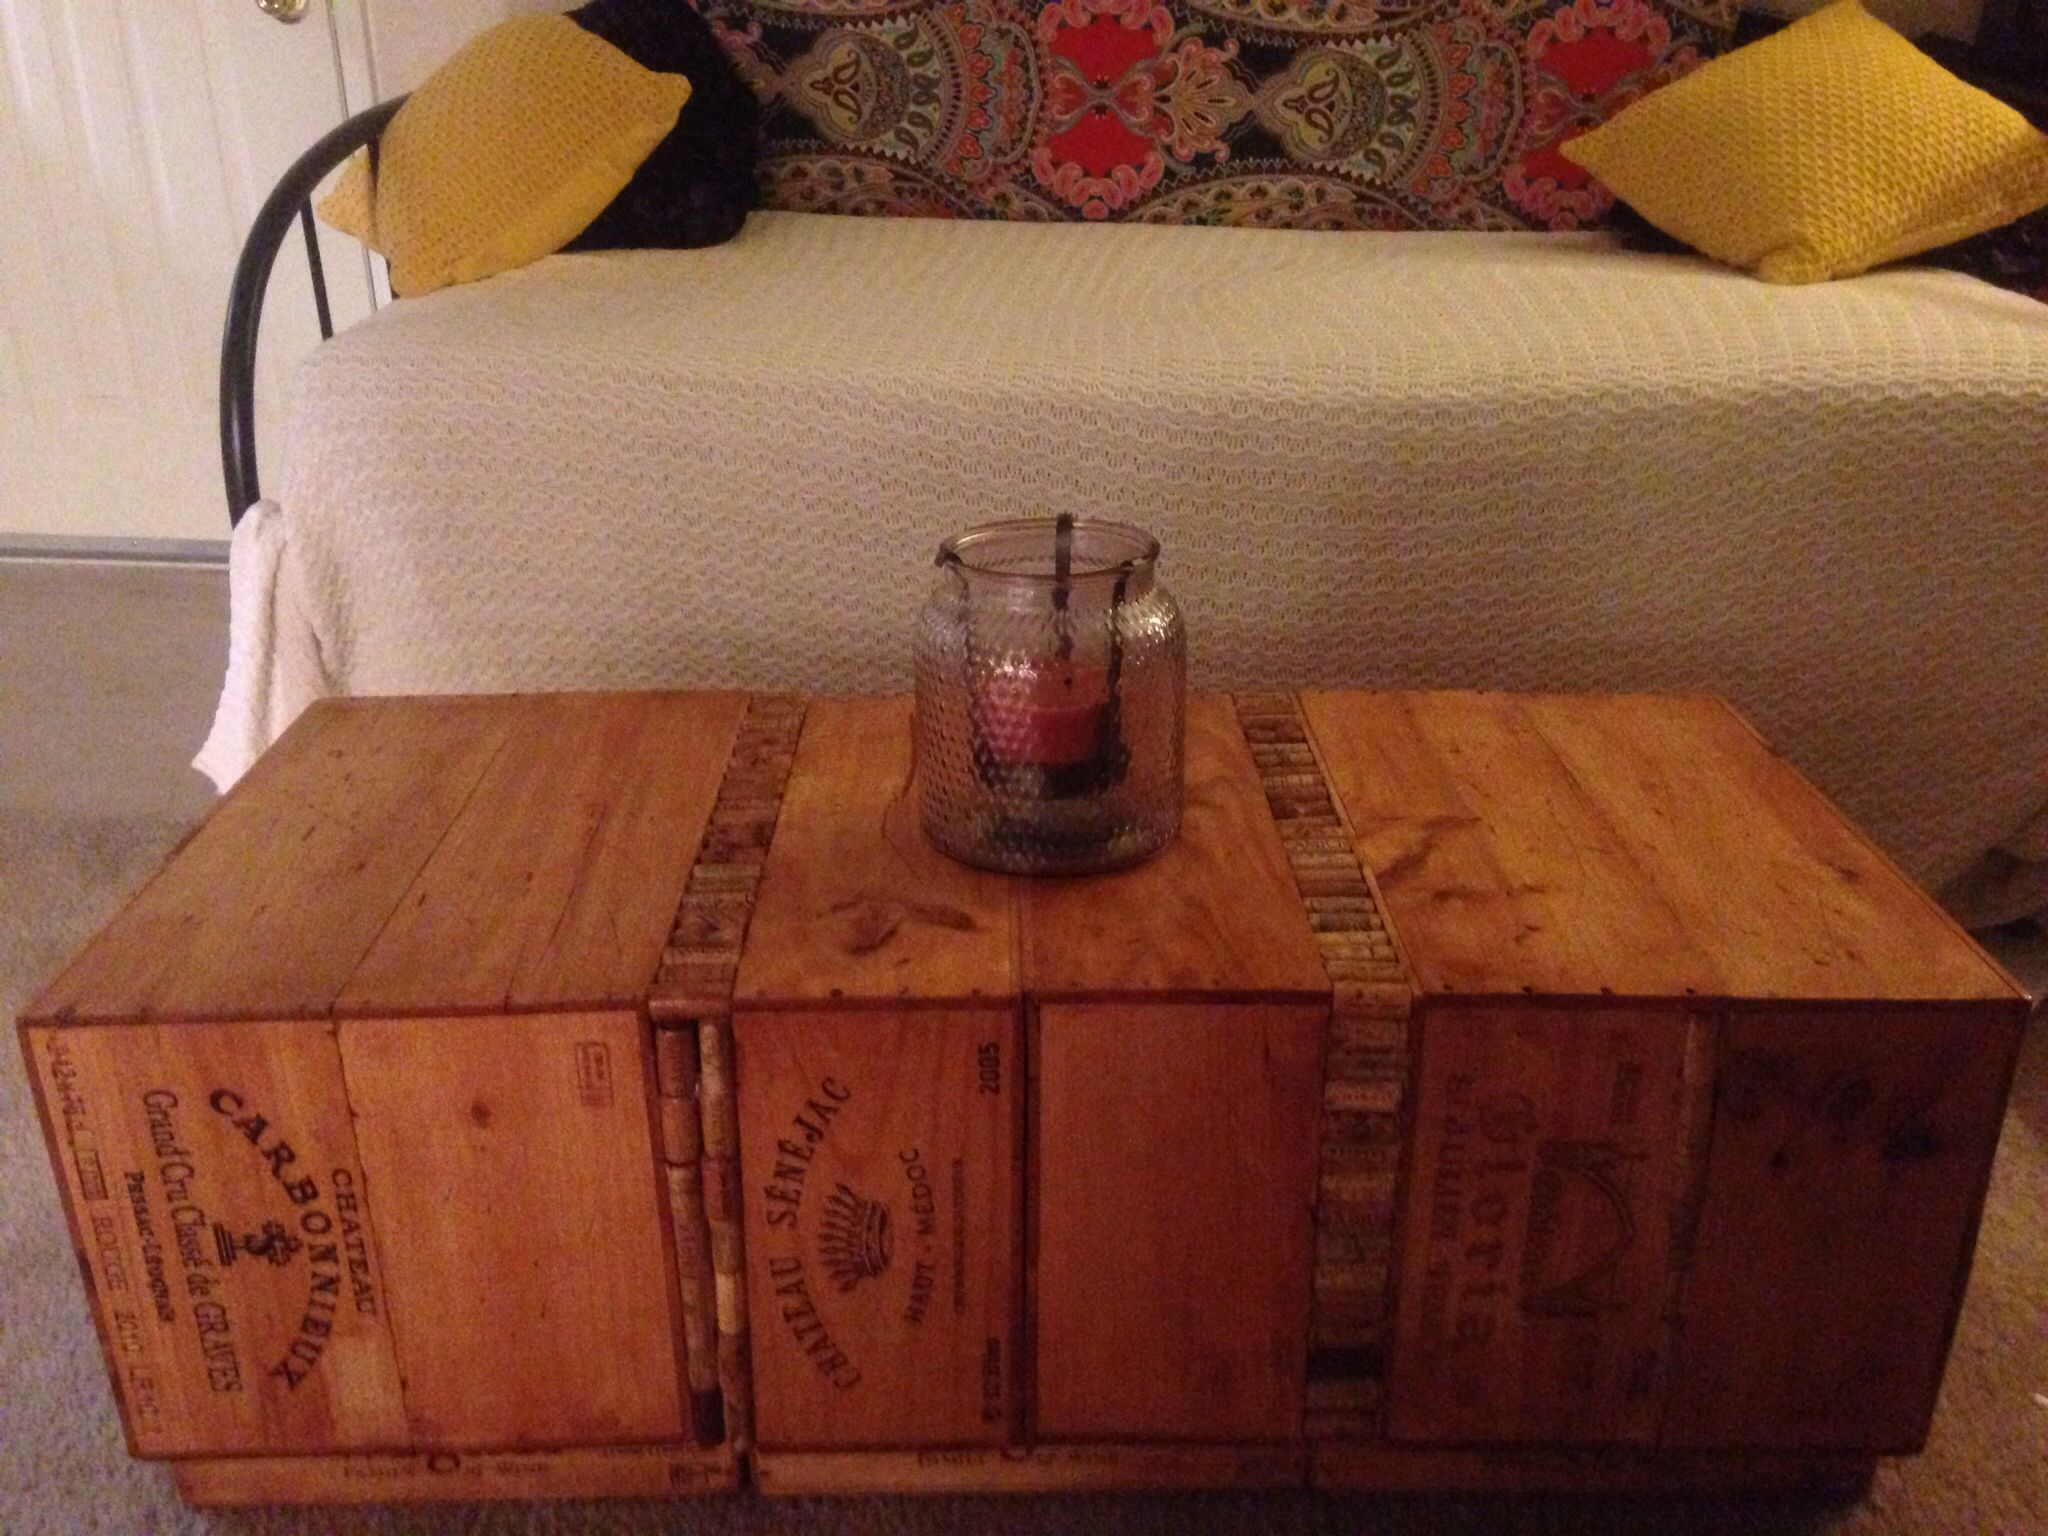 Wine Boxes And Corks Wooden Wine Boxes Wine Box Wine Craft